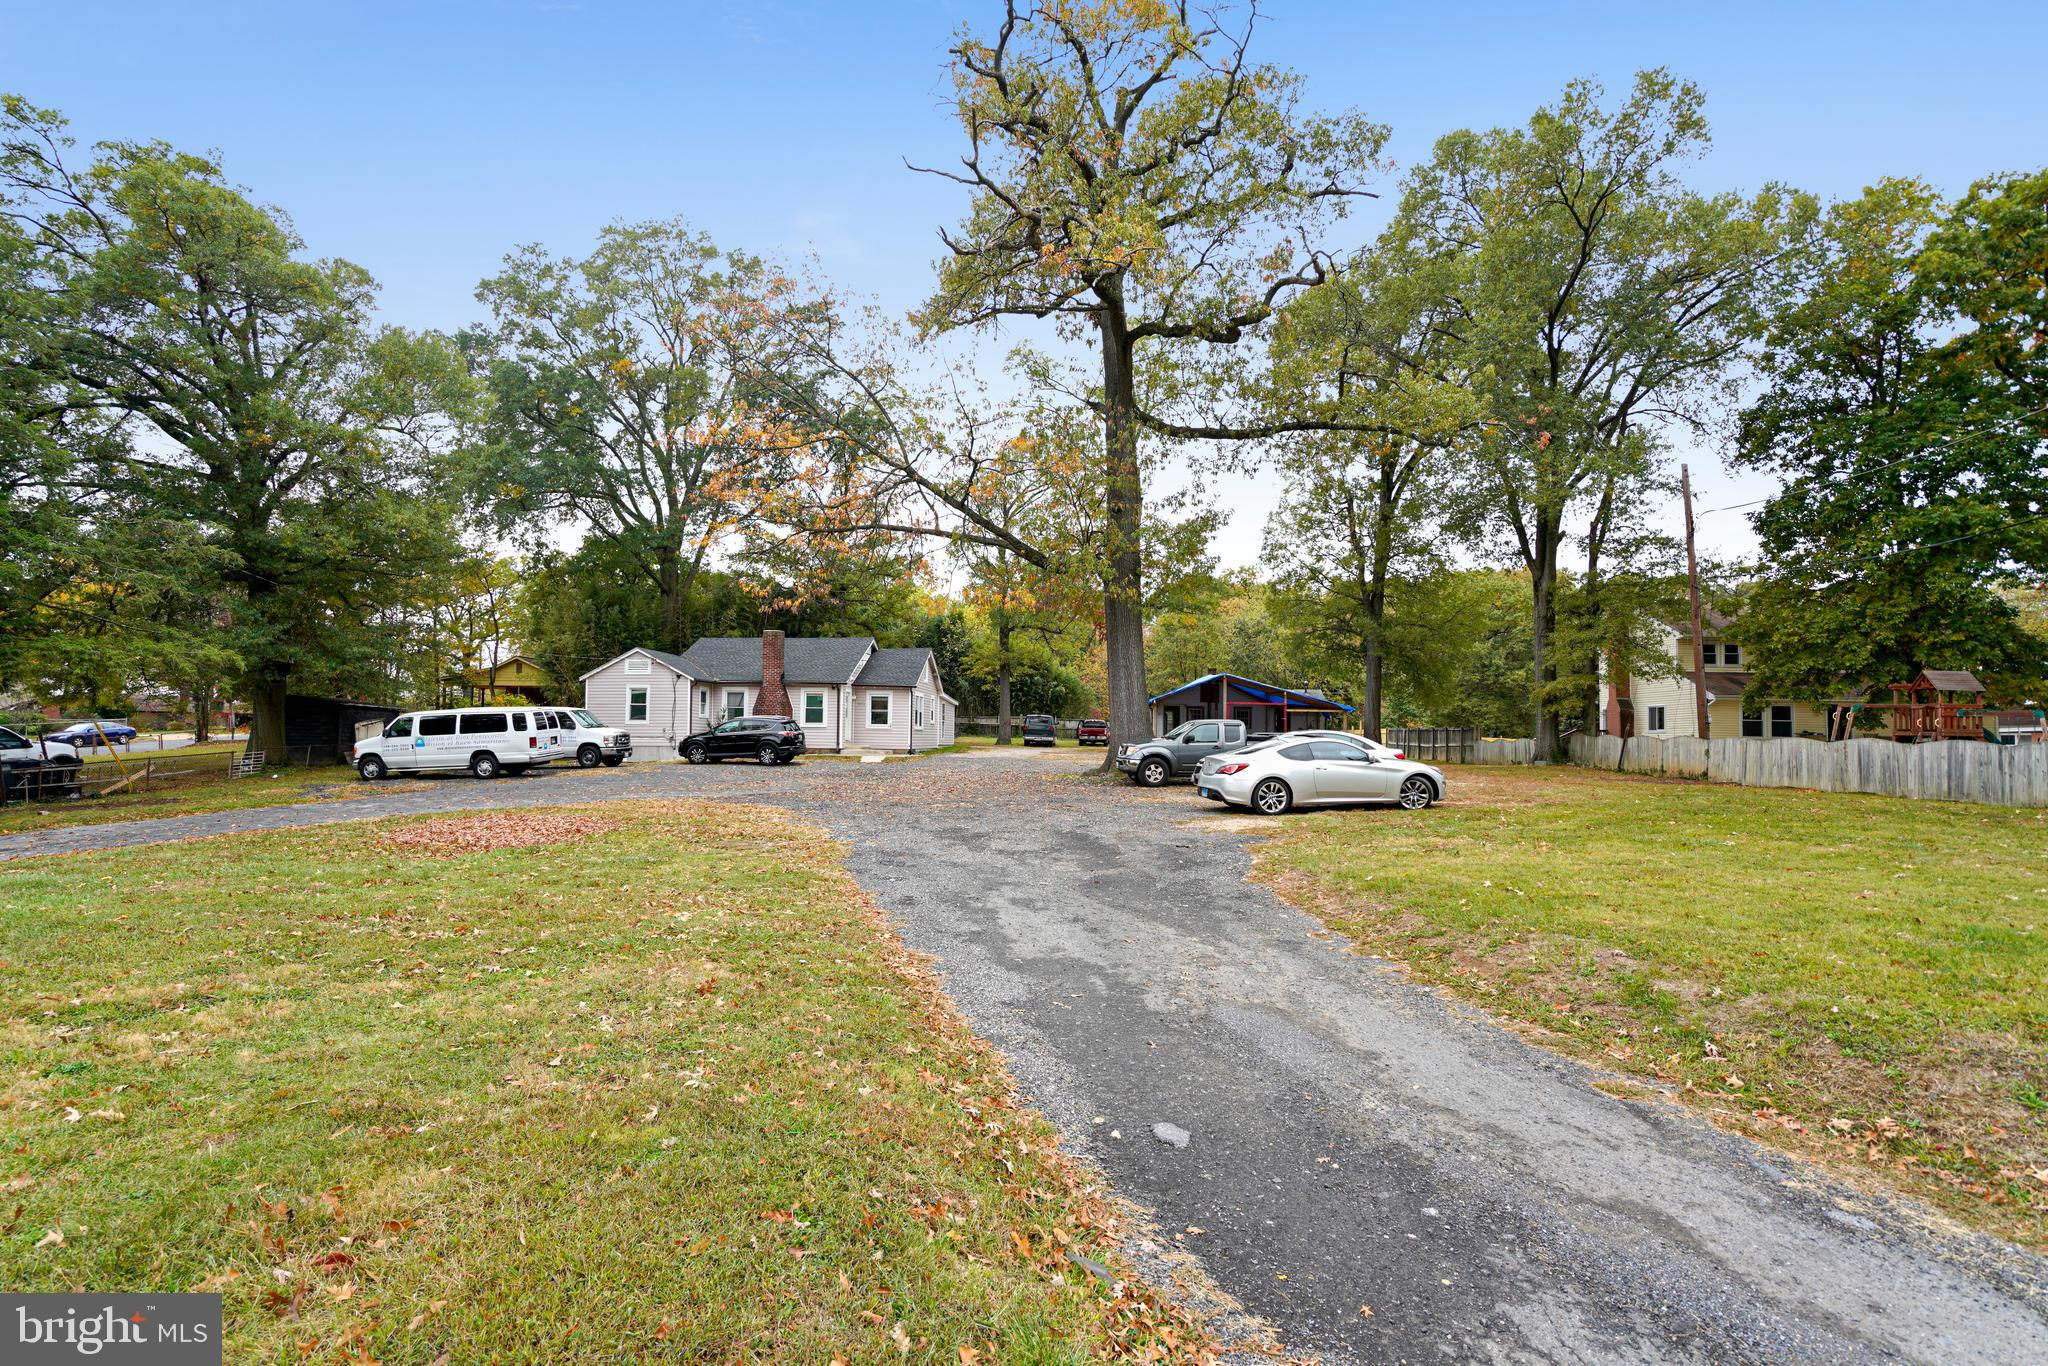 8504 ADELPHI ROAD, ADELPHI, MD 20783